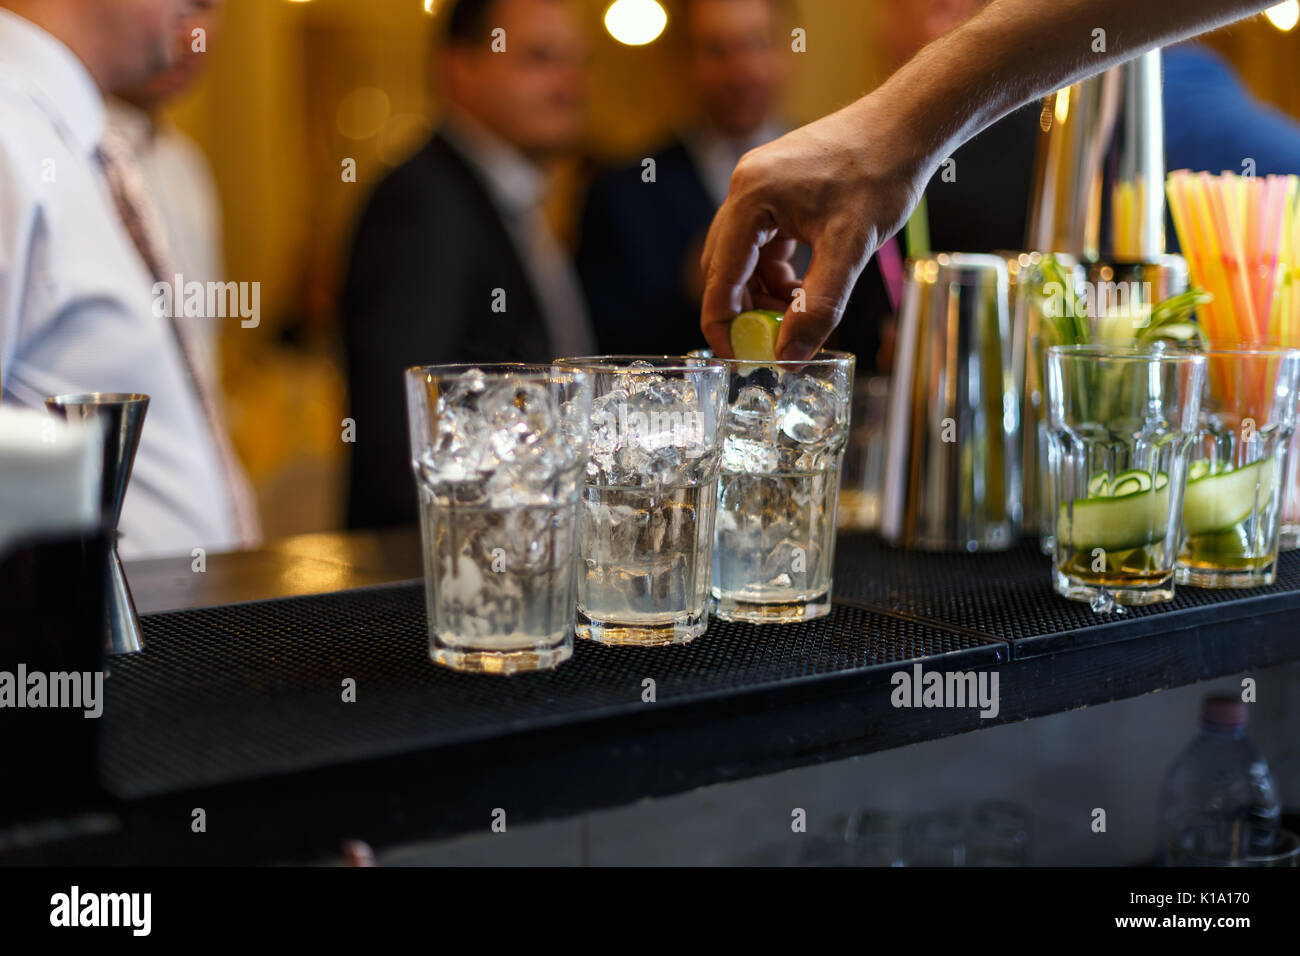 Bartender muddling lime to make a cocktail - Stock Image